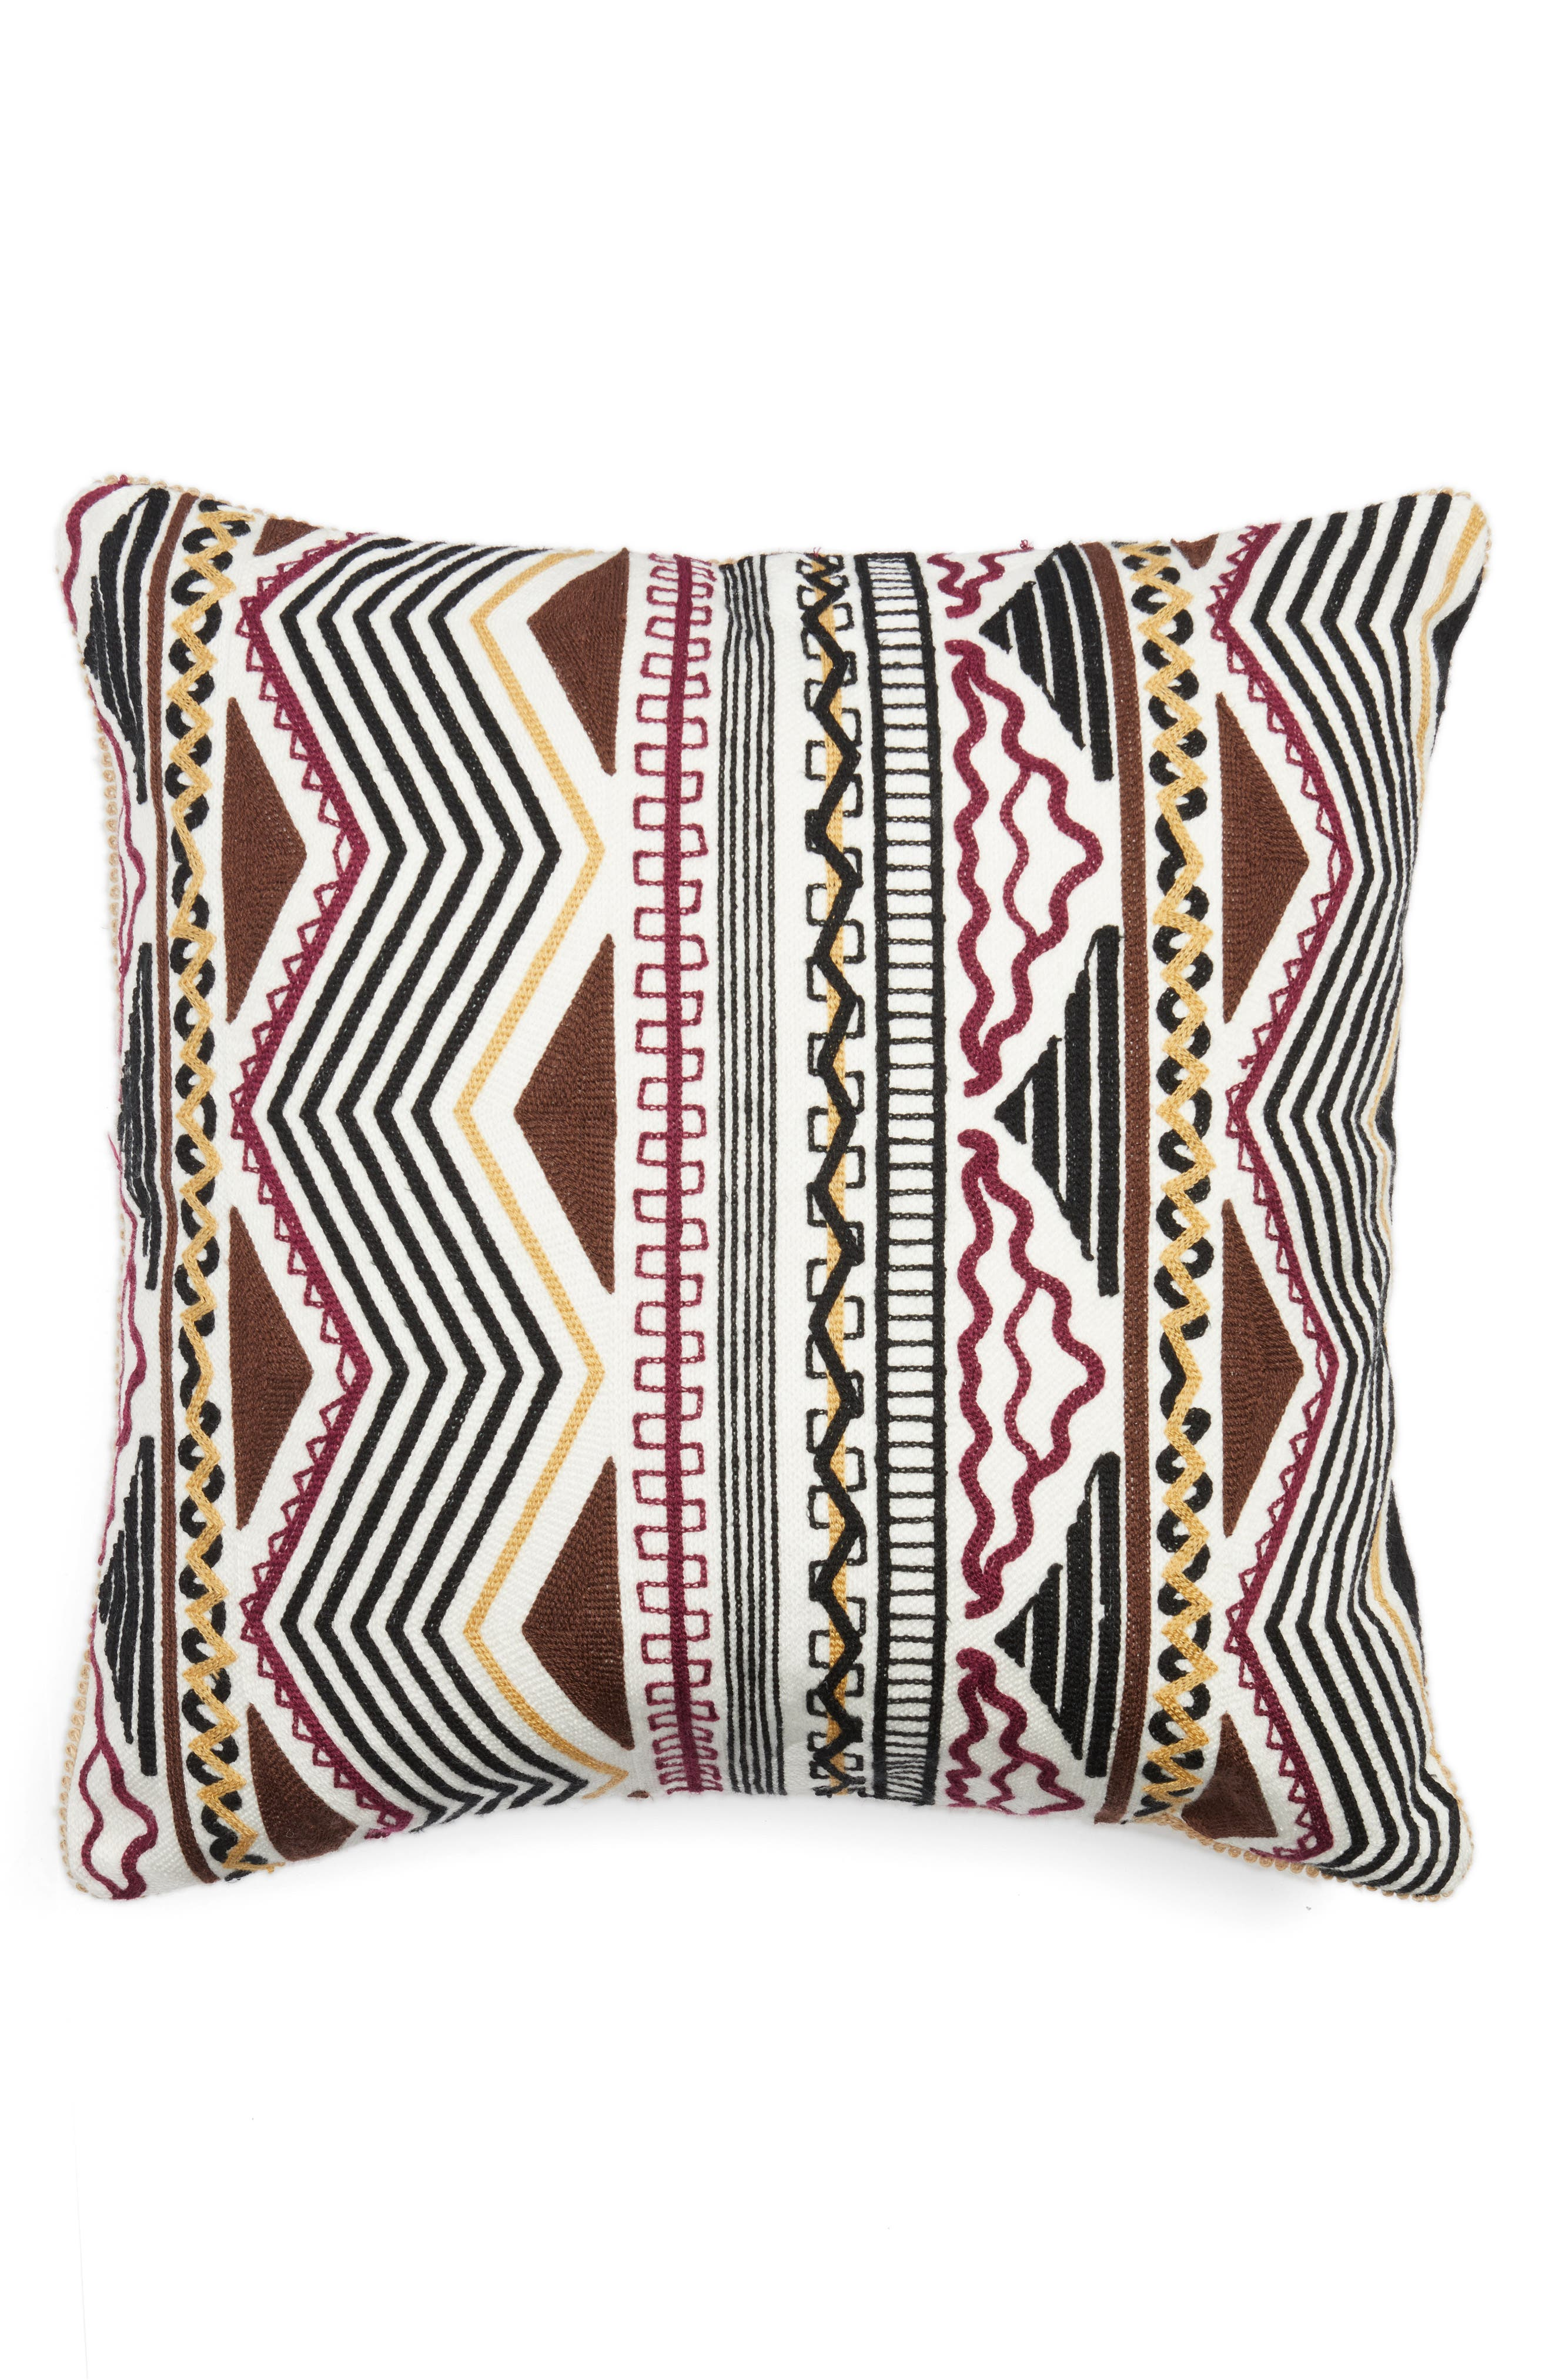 Zander Embroidered Pillow,                             Main thumbnail 1, color,                             500